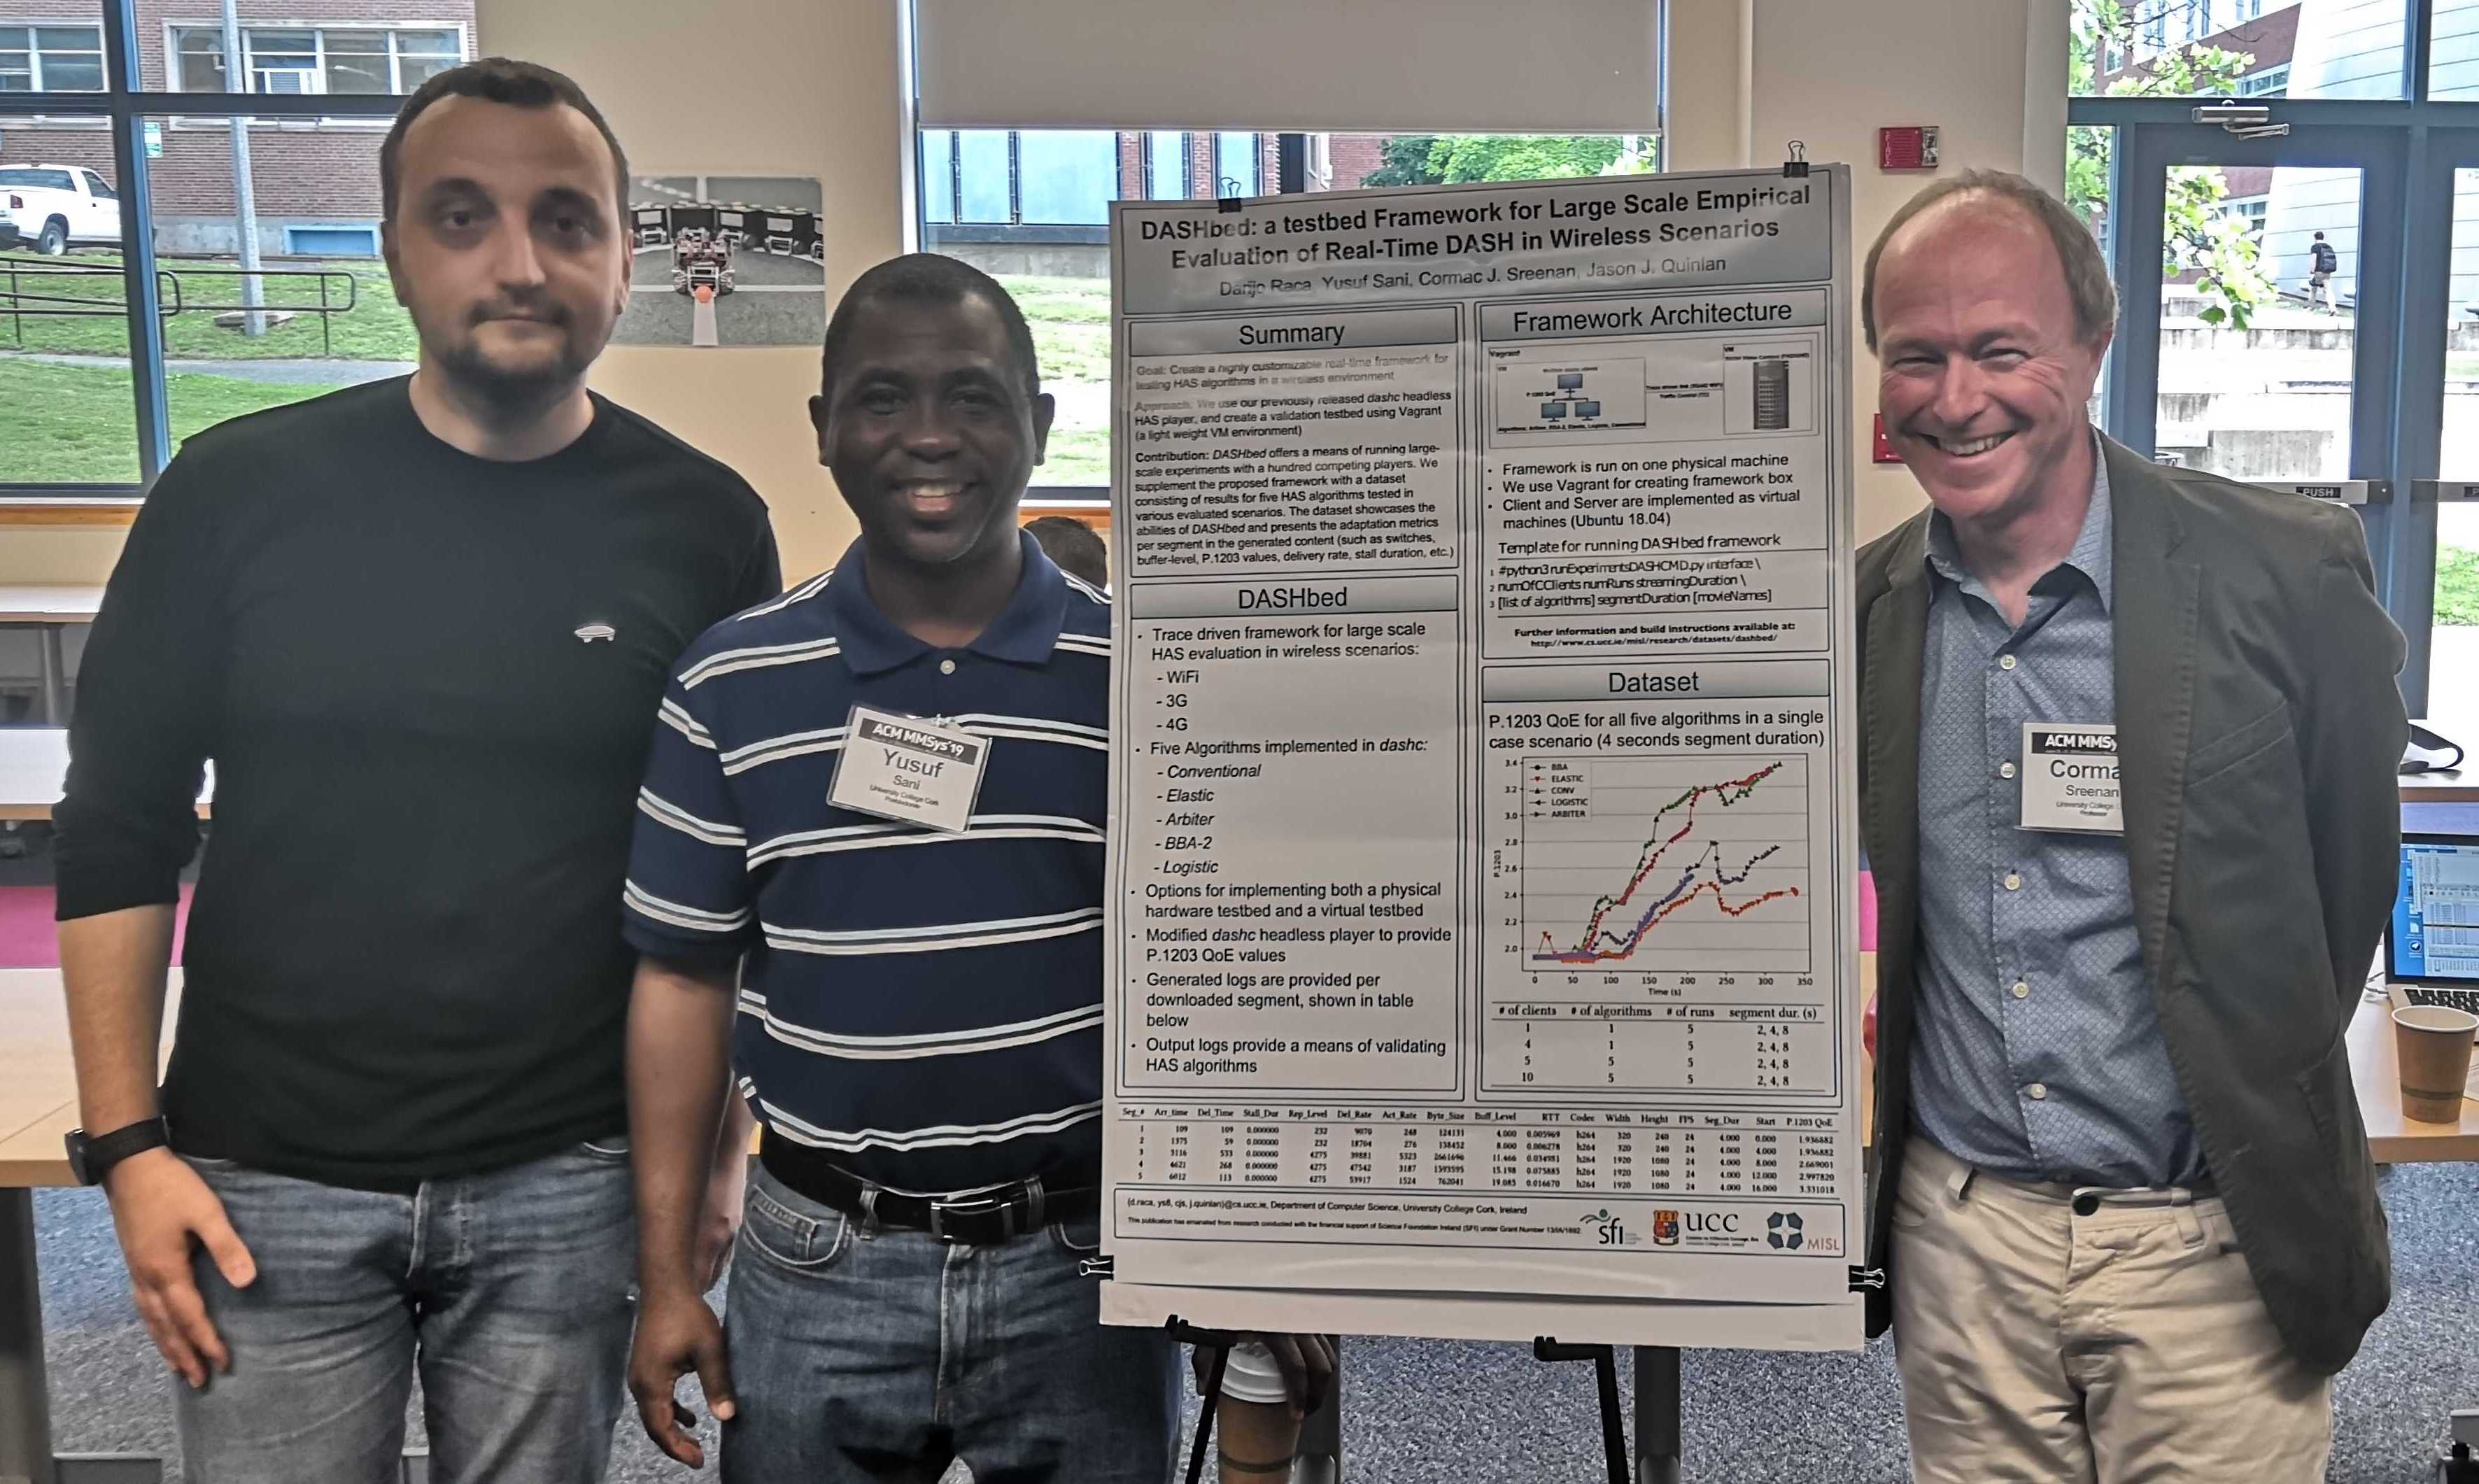 Darijo, yusuf and Cormac presenting DASHbed at MMSys 2019